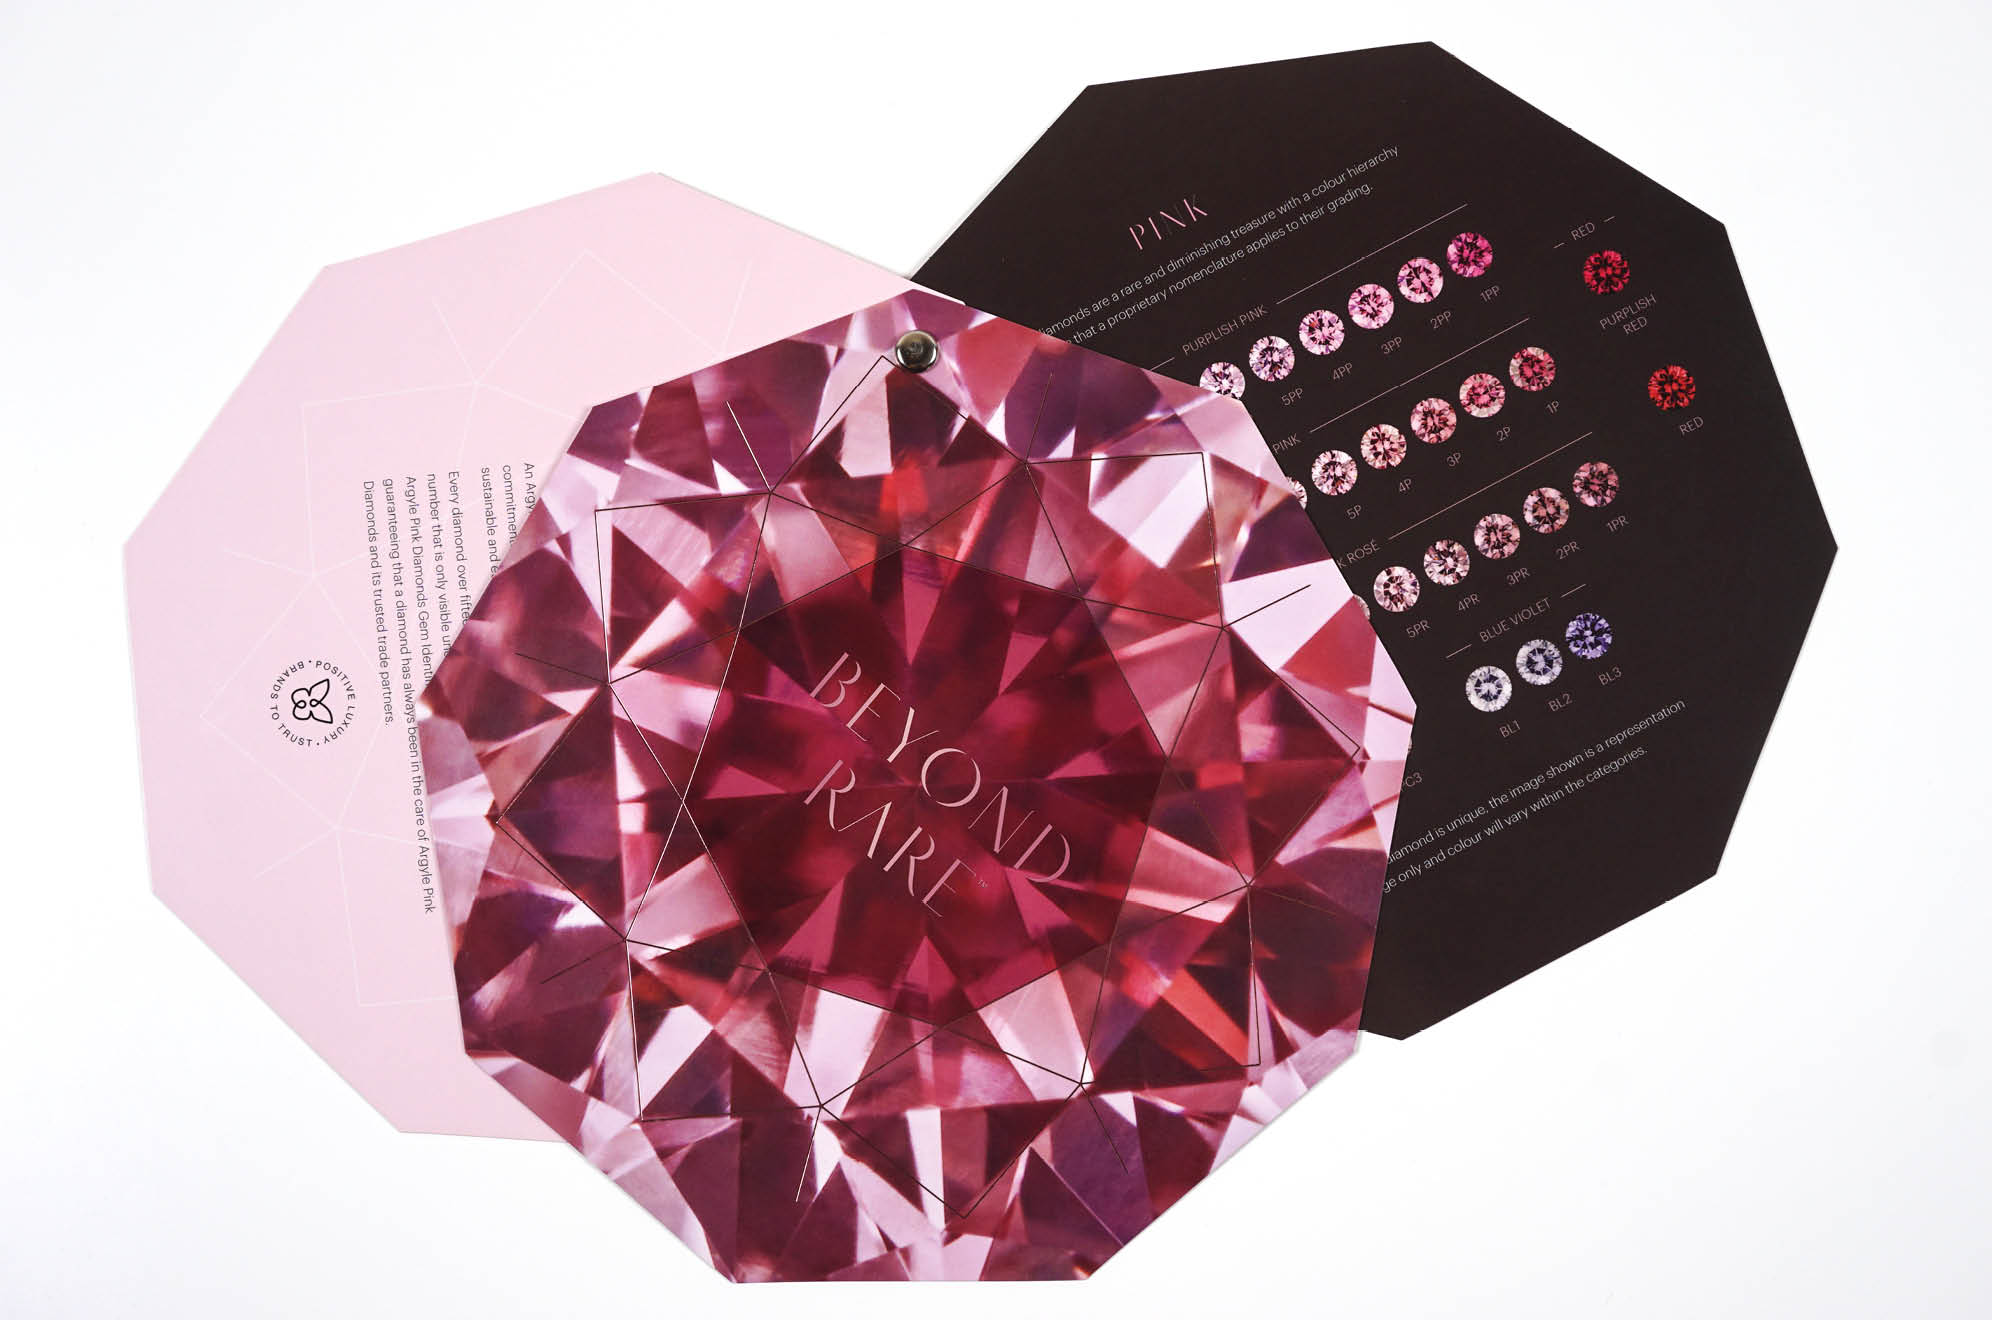 Beyond Rare Argyle Pink Diamond rivet brochure branding